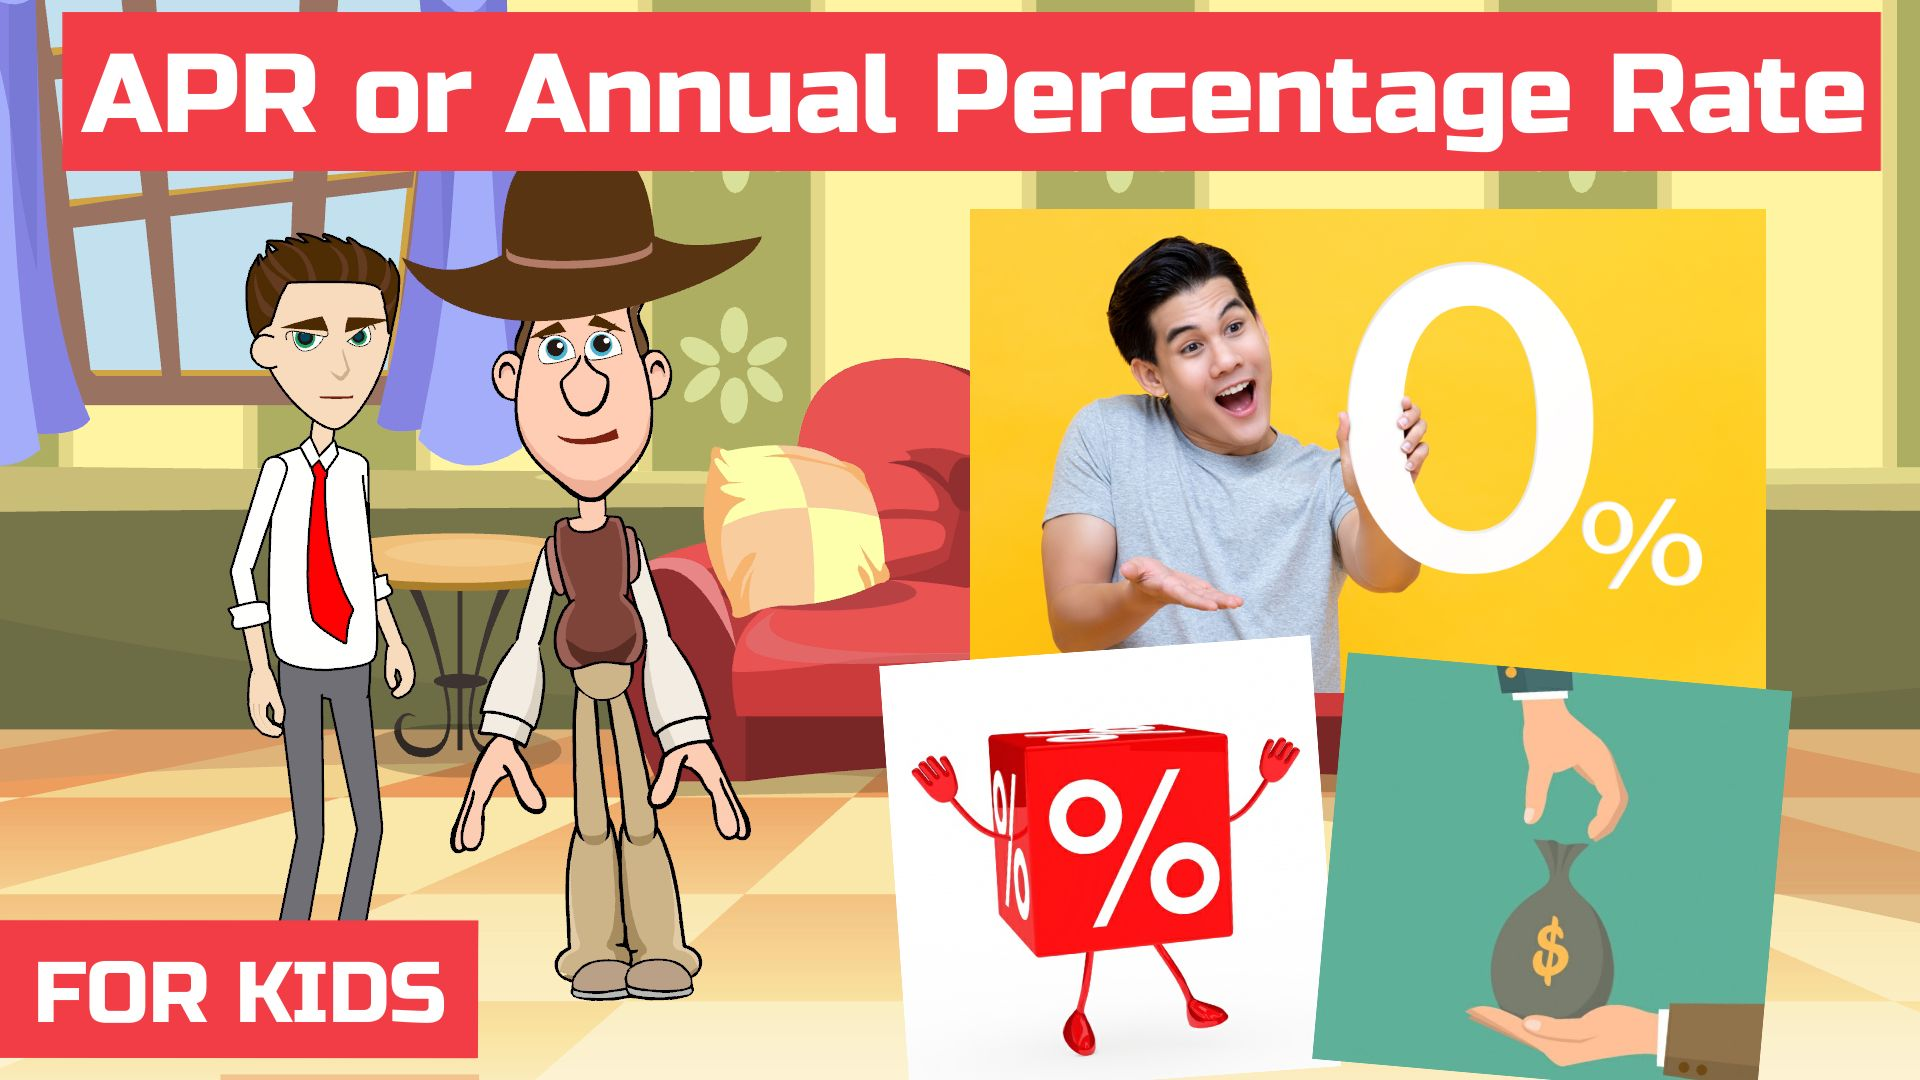 What is APR - Annual Percentage Rate